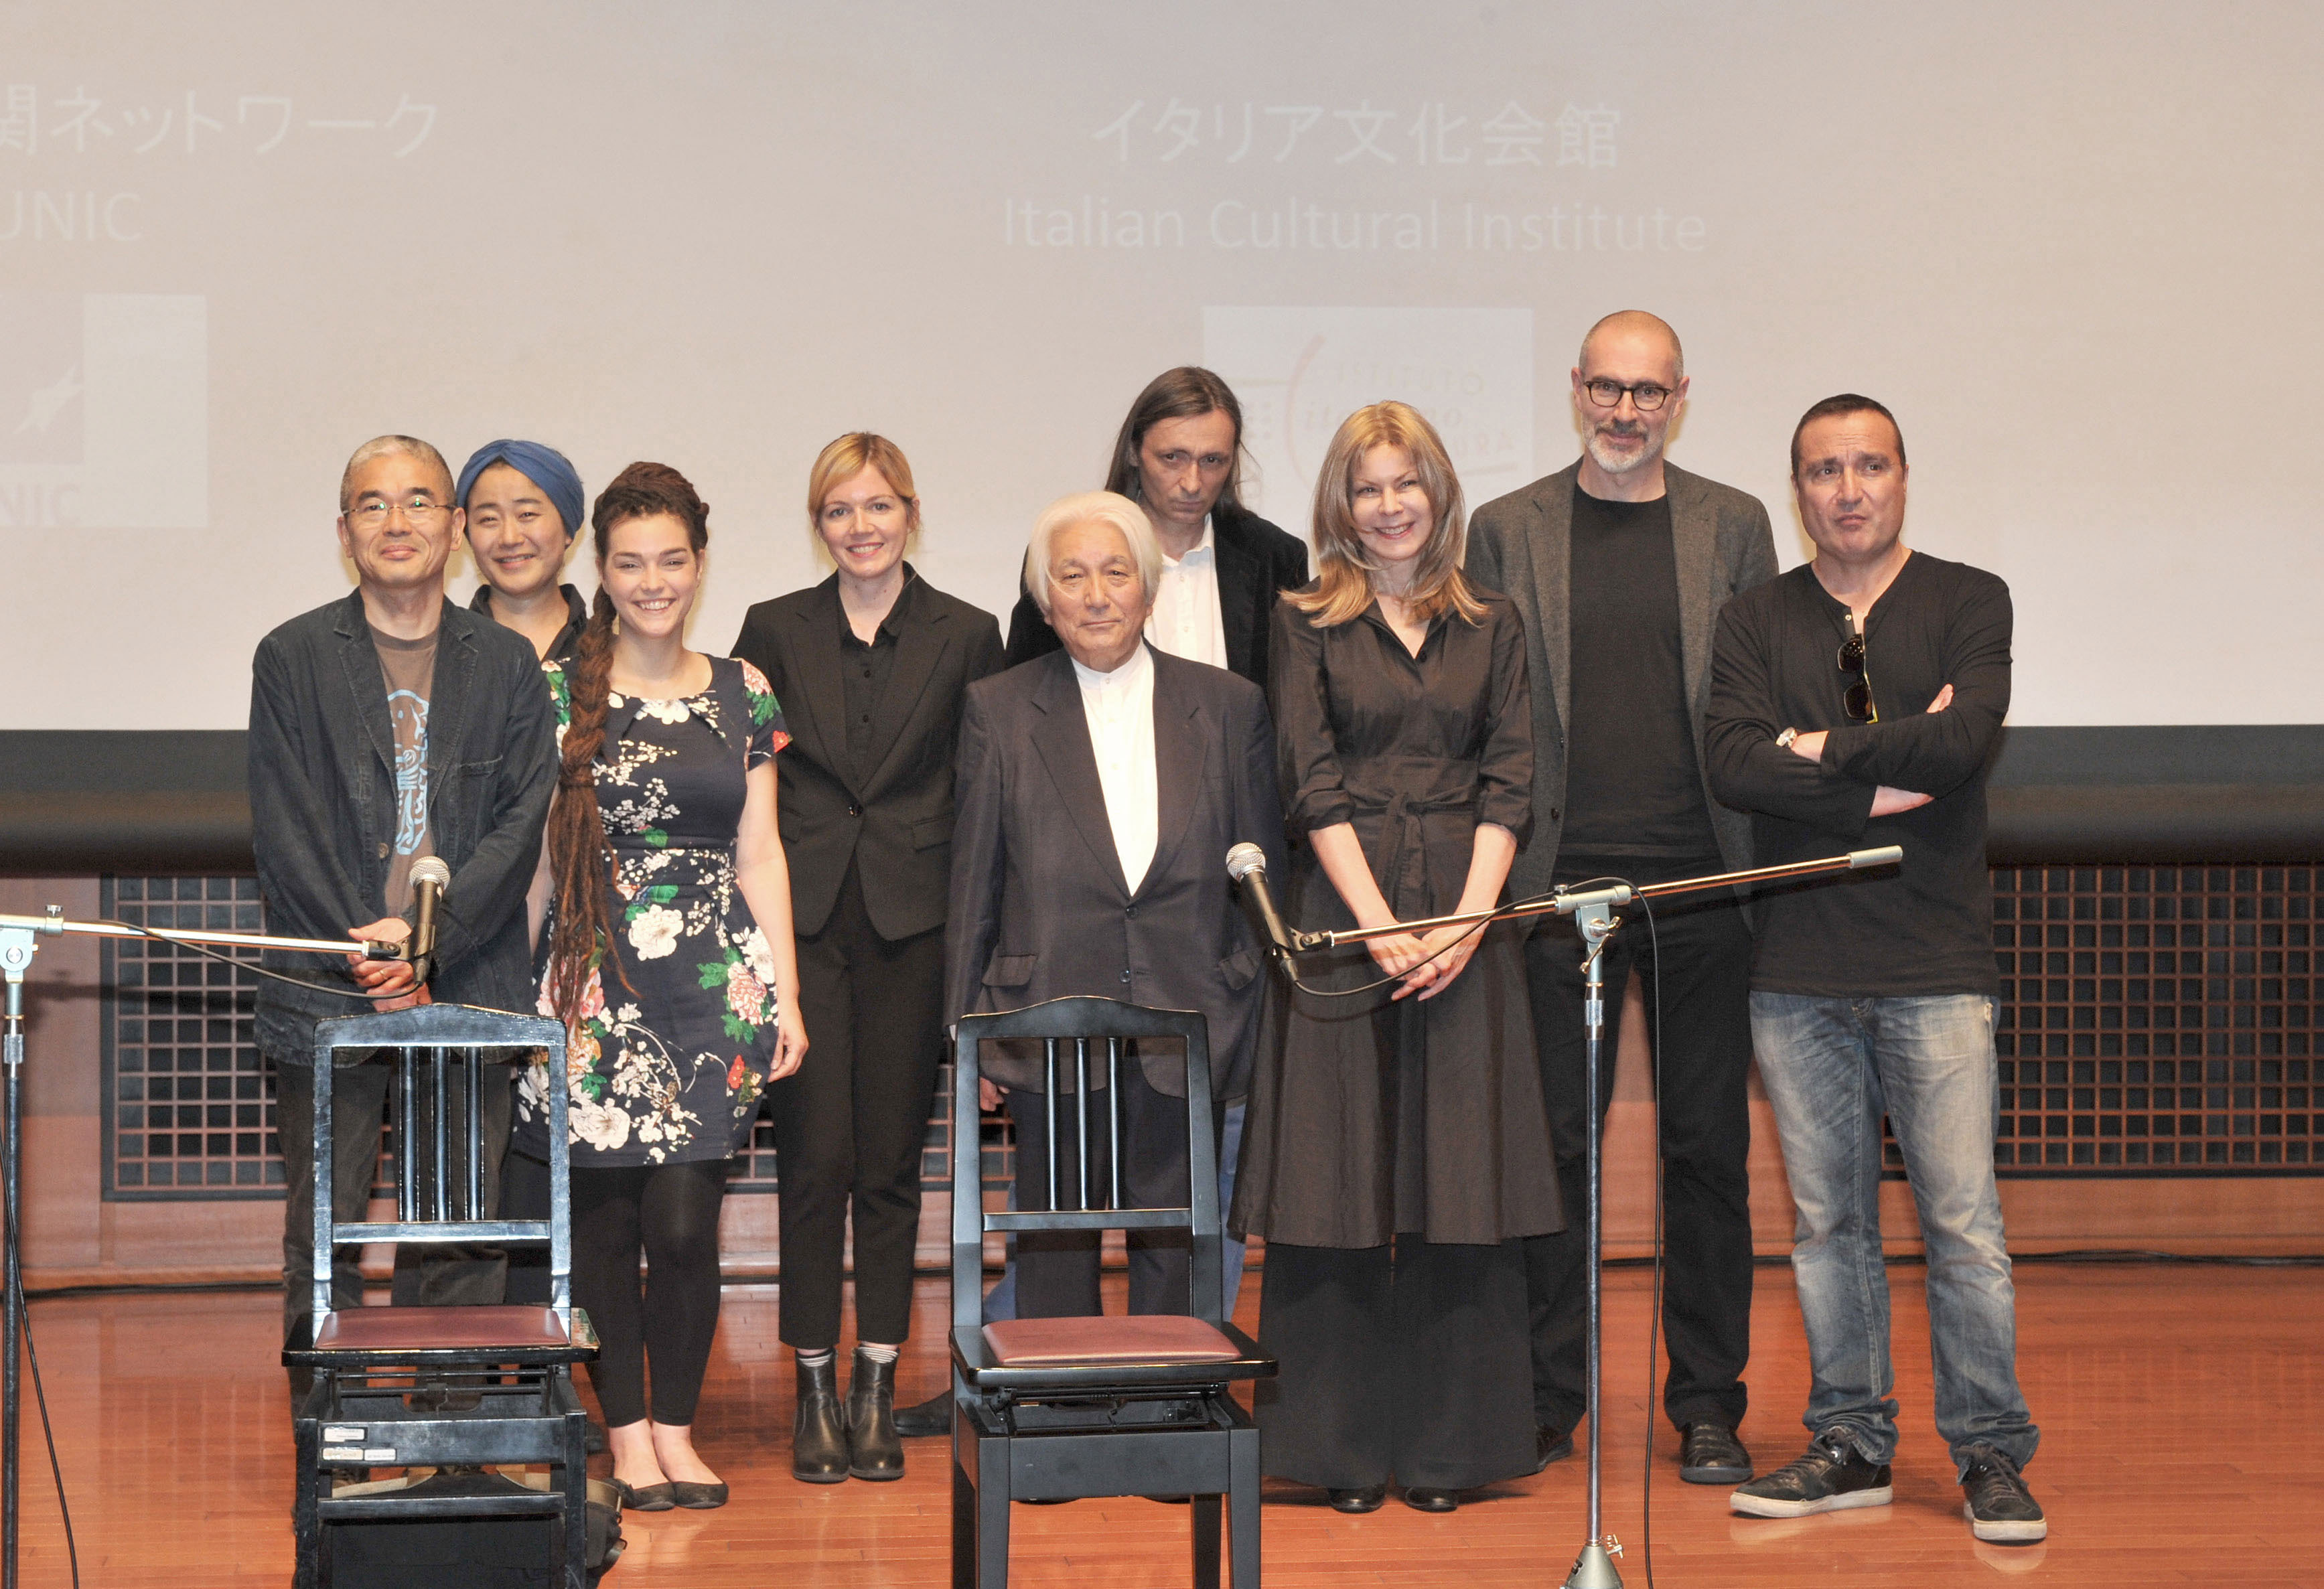 Representatives from the eight countries (Austria, Czech Republic, Germany, Ireland, Italy, Poland, Portugal and Spain) taking part in the event pose at the Italian Cultural Institute in Tokyo on May 27. The event unites an array of poets, musicians and performers for a unique poetic and multimedia journey bridging borders, languages, eras and styles. | YOSHIAKI MIURA  MACIEJ KOMOROWSKI / IPTOKIO